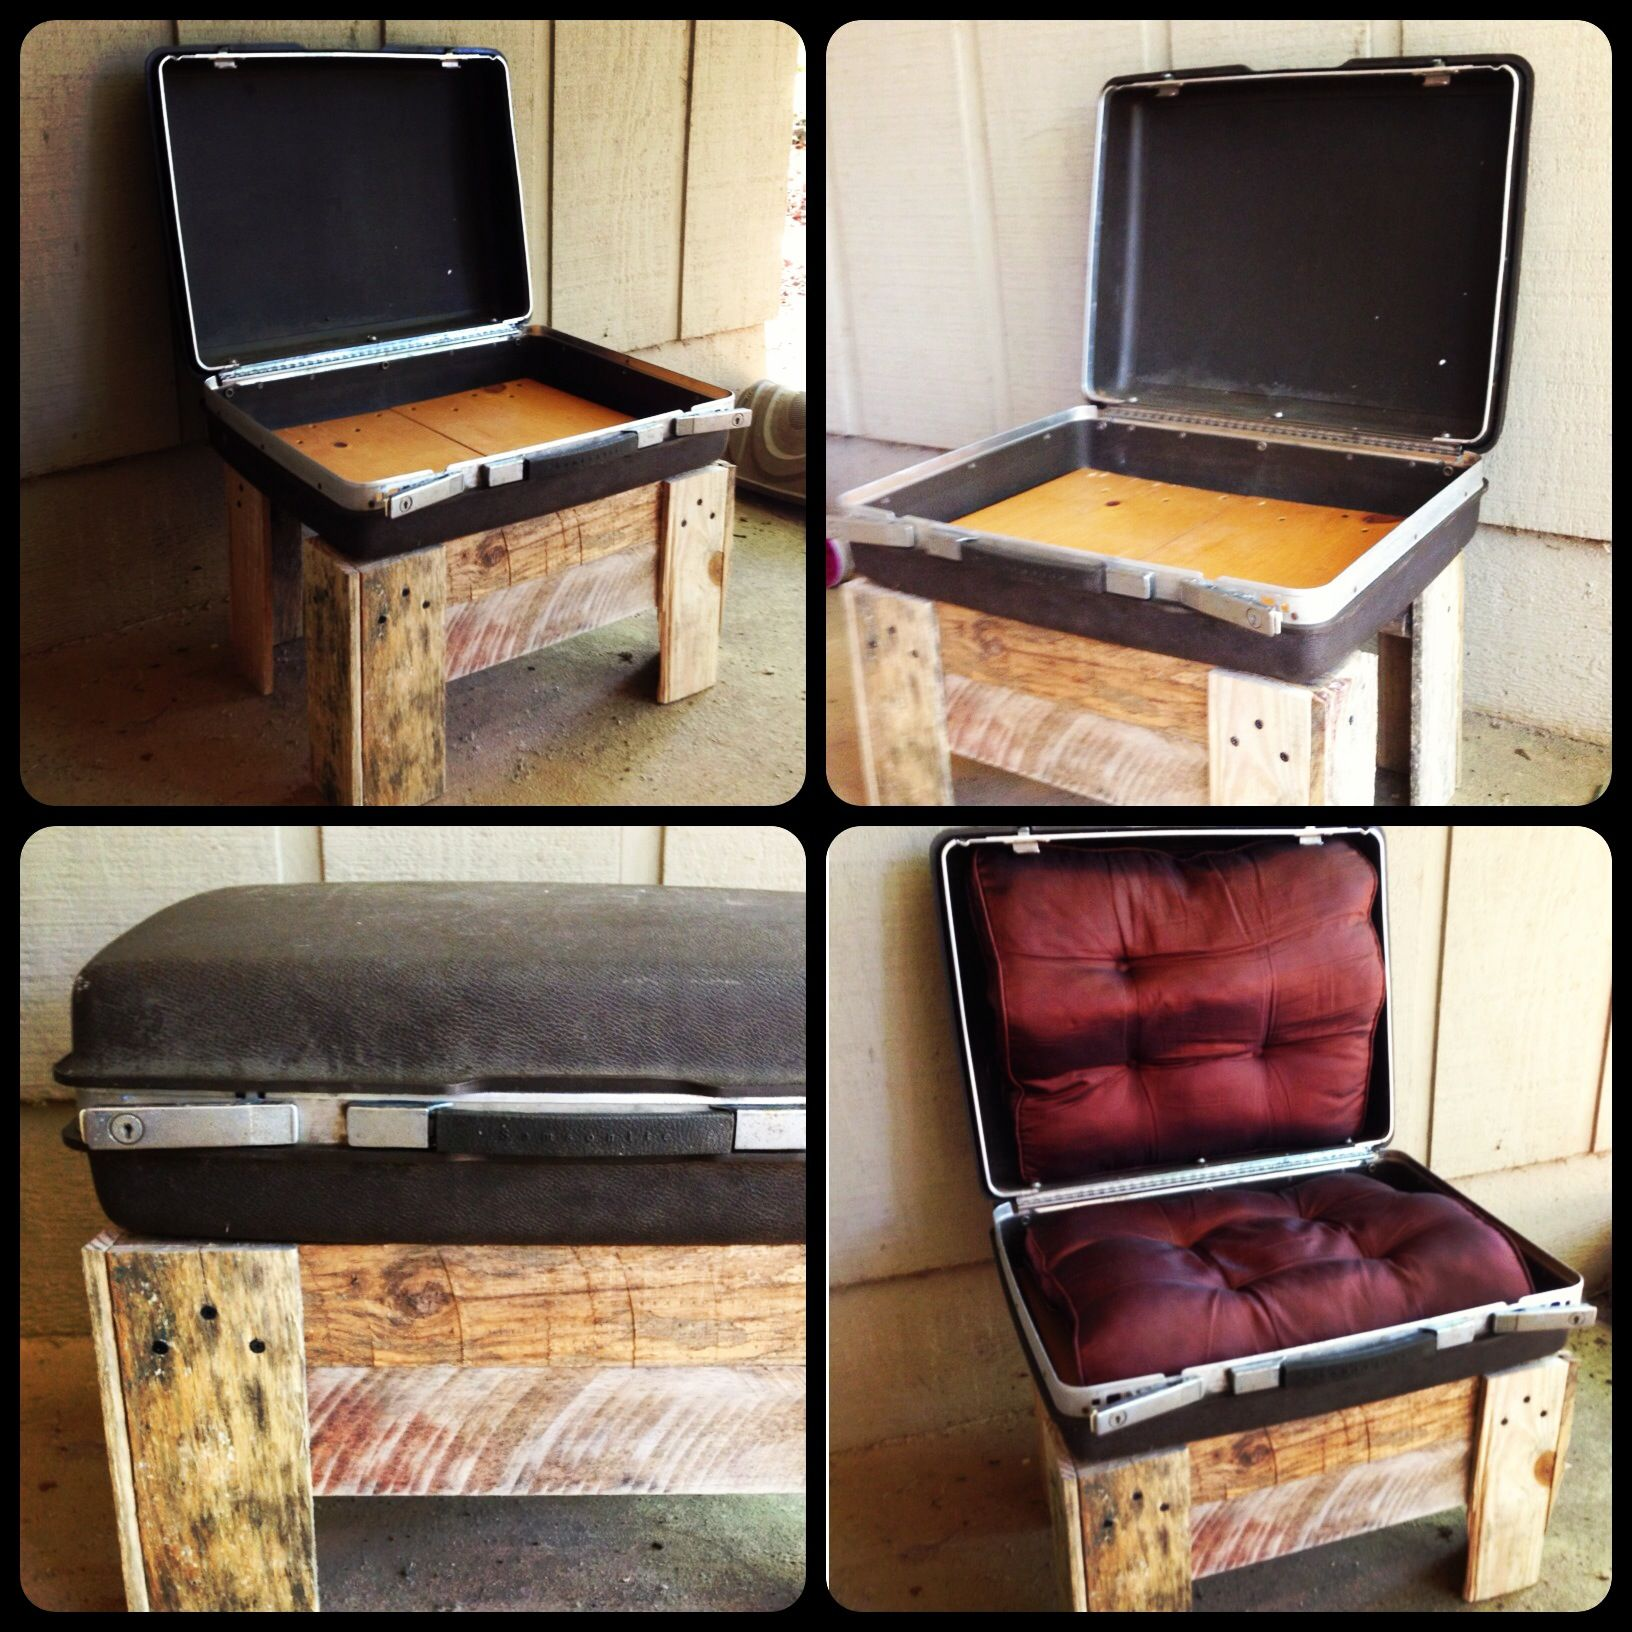 Repurposed Home Decor: Old Suitcase Repurposed Into Chair